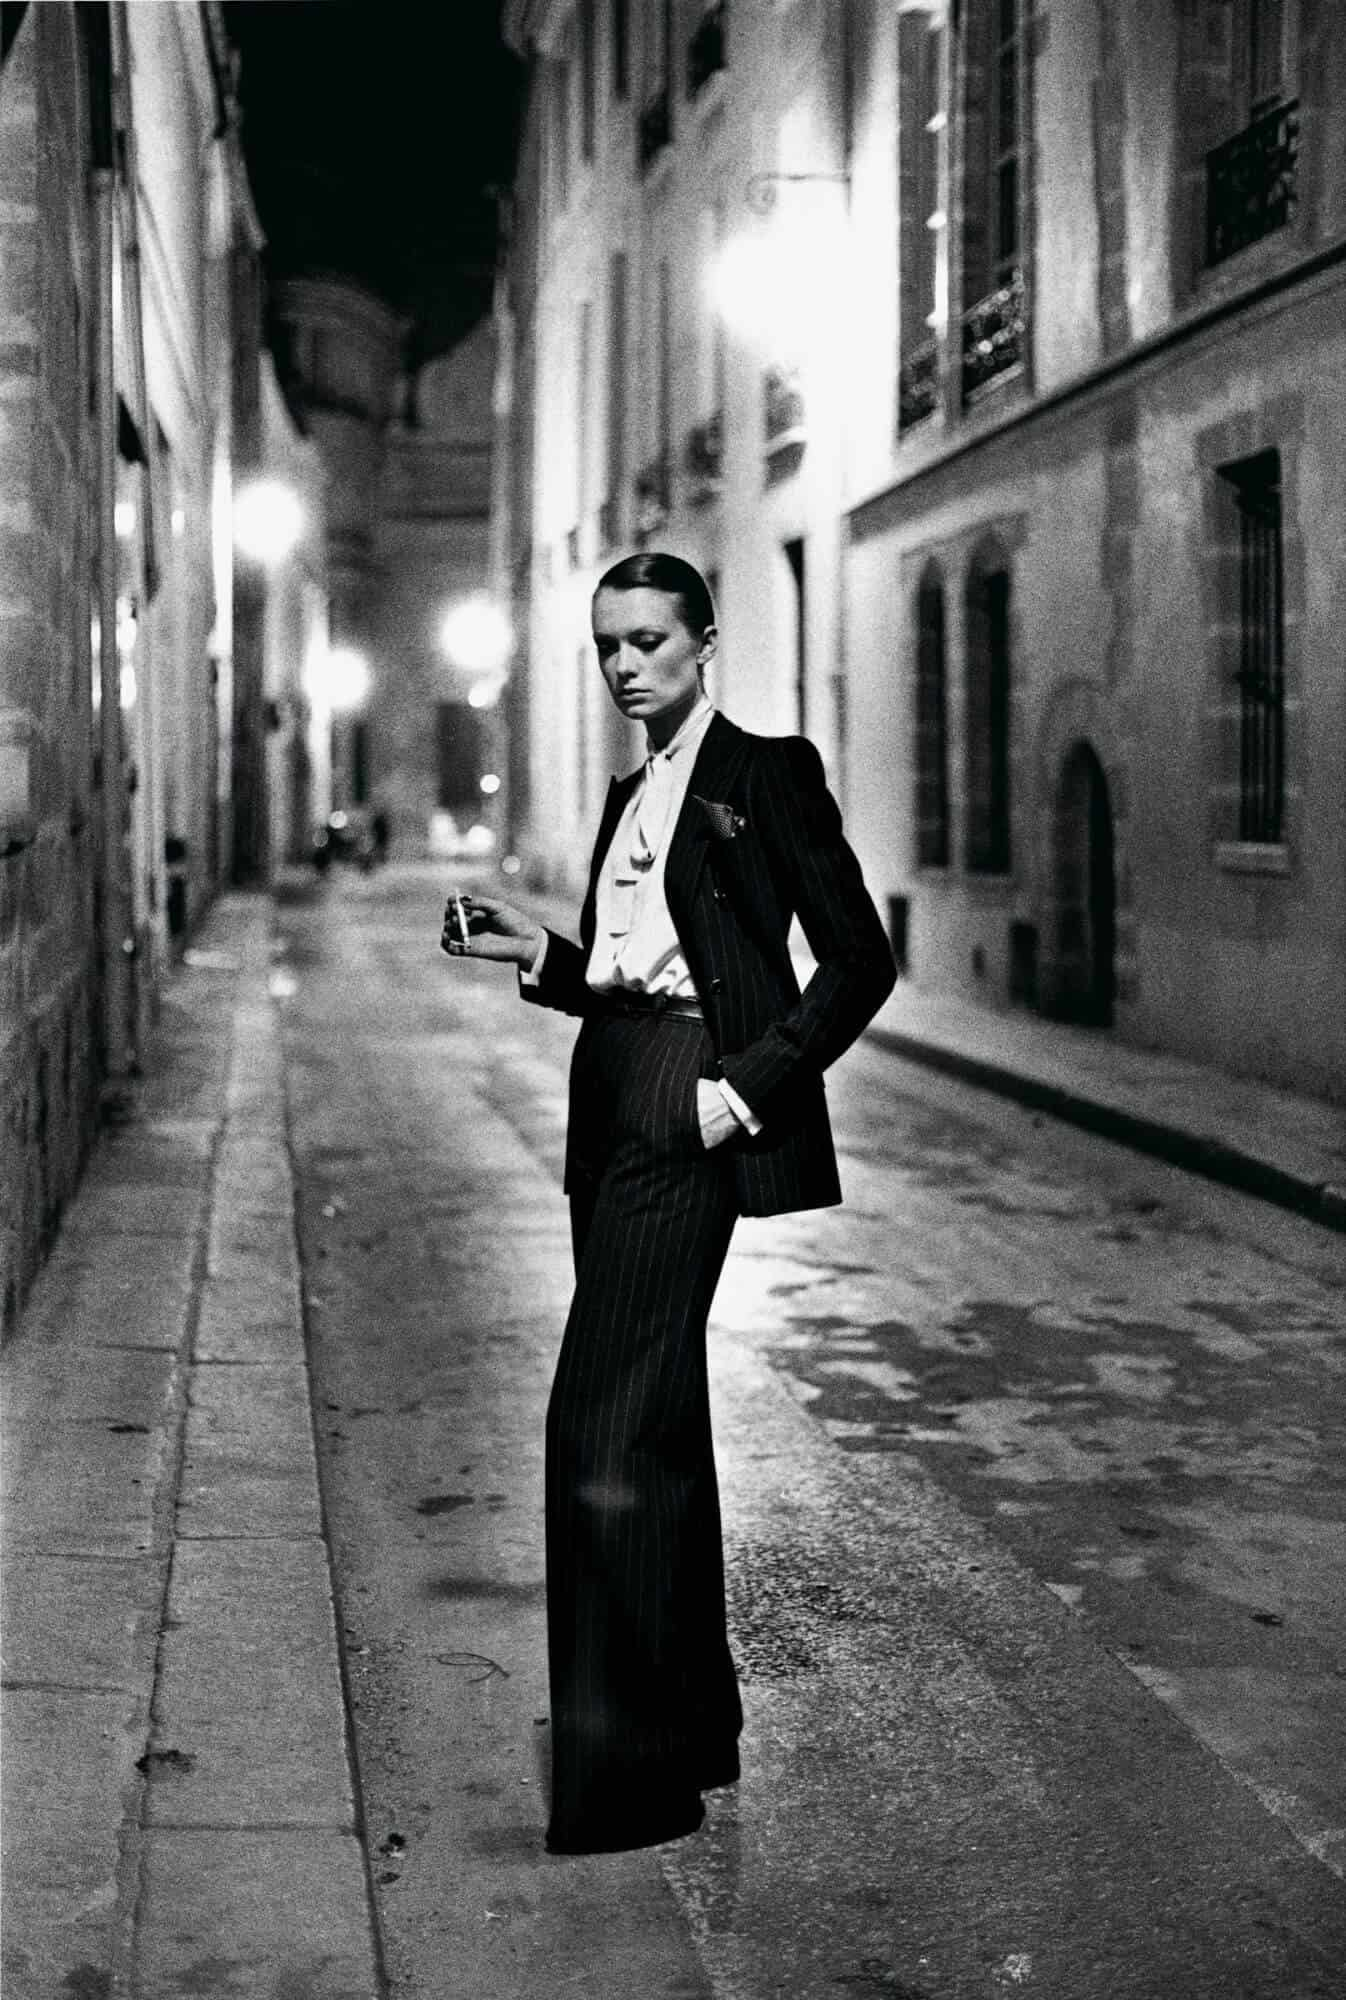 Yves Saint Laurent, French Vogue, Rue Aubriot, Paris 1975 © Helmut Newton / Helmut Newton Estate